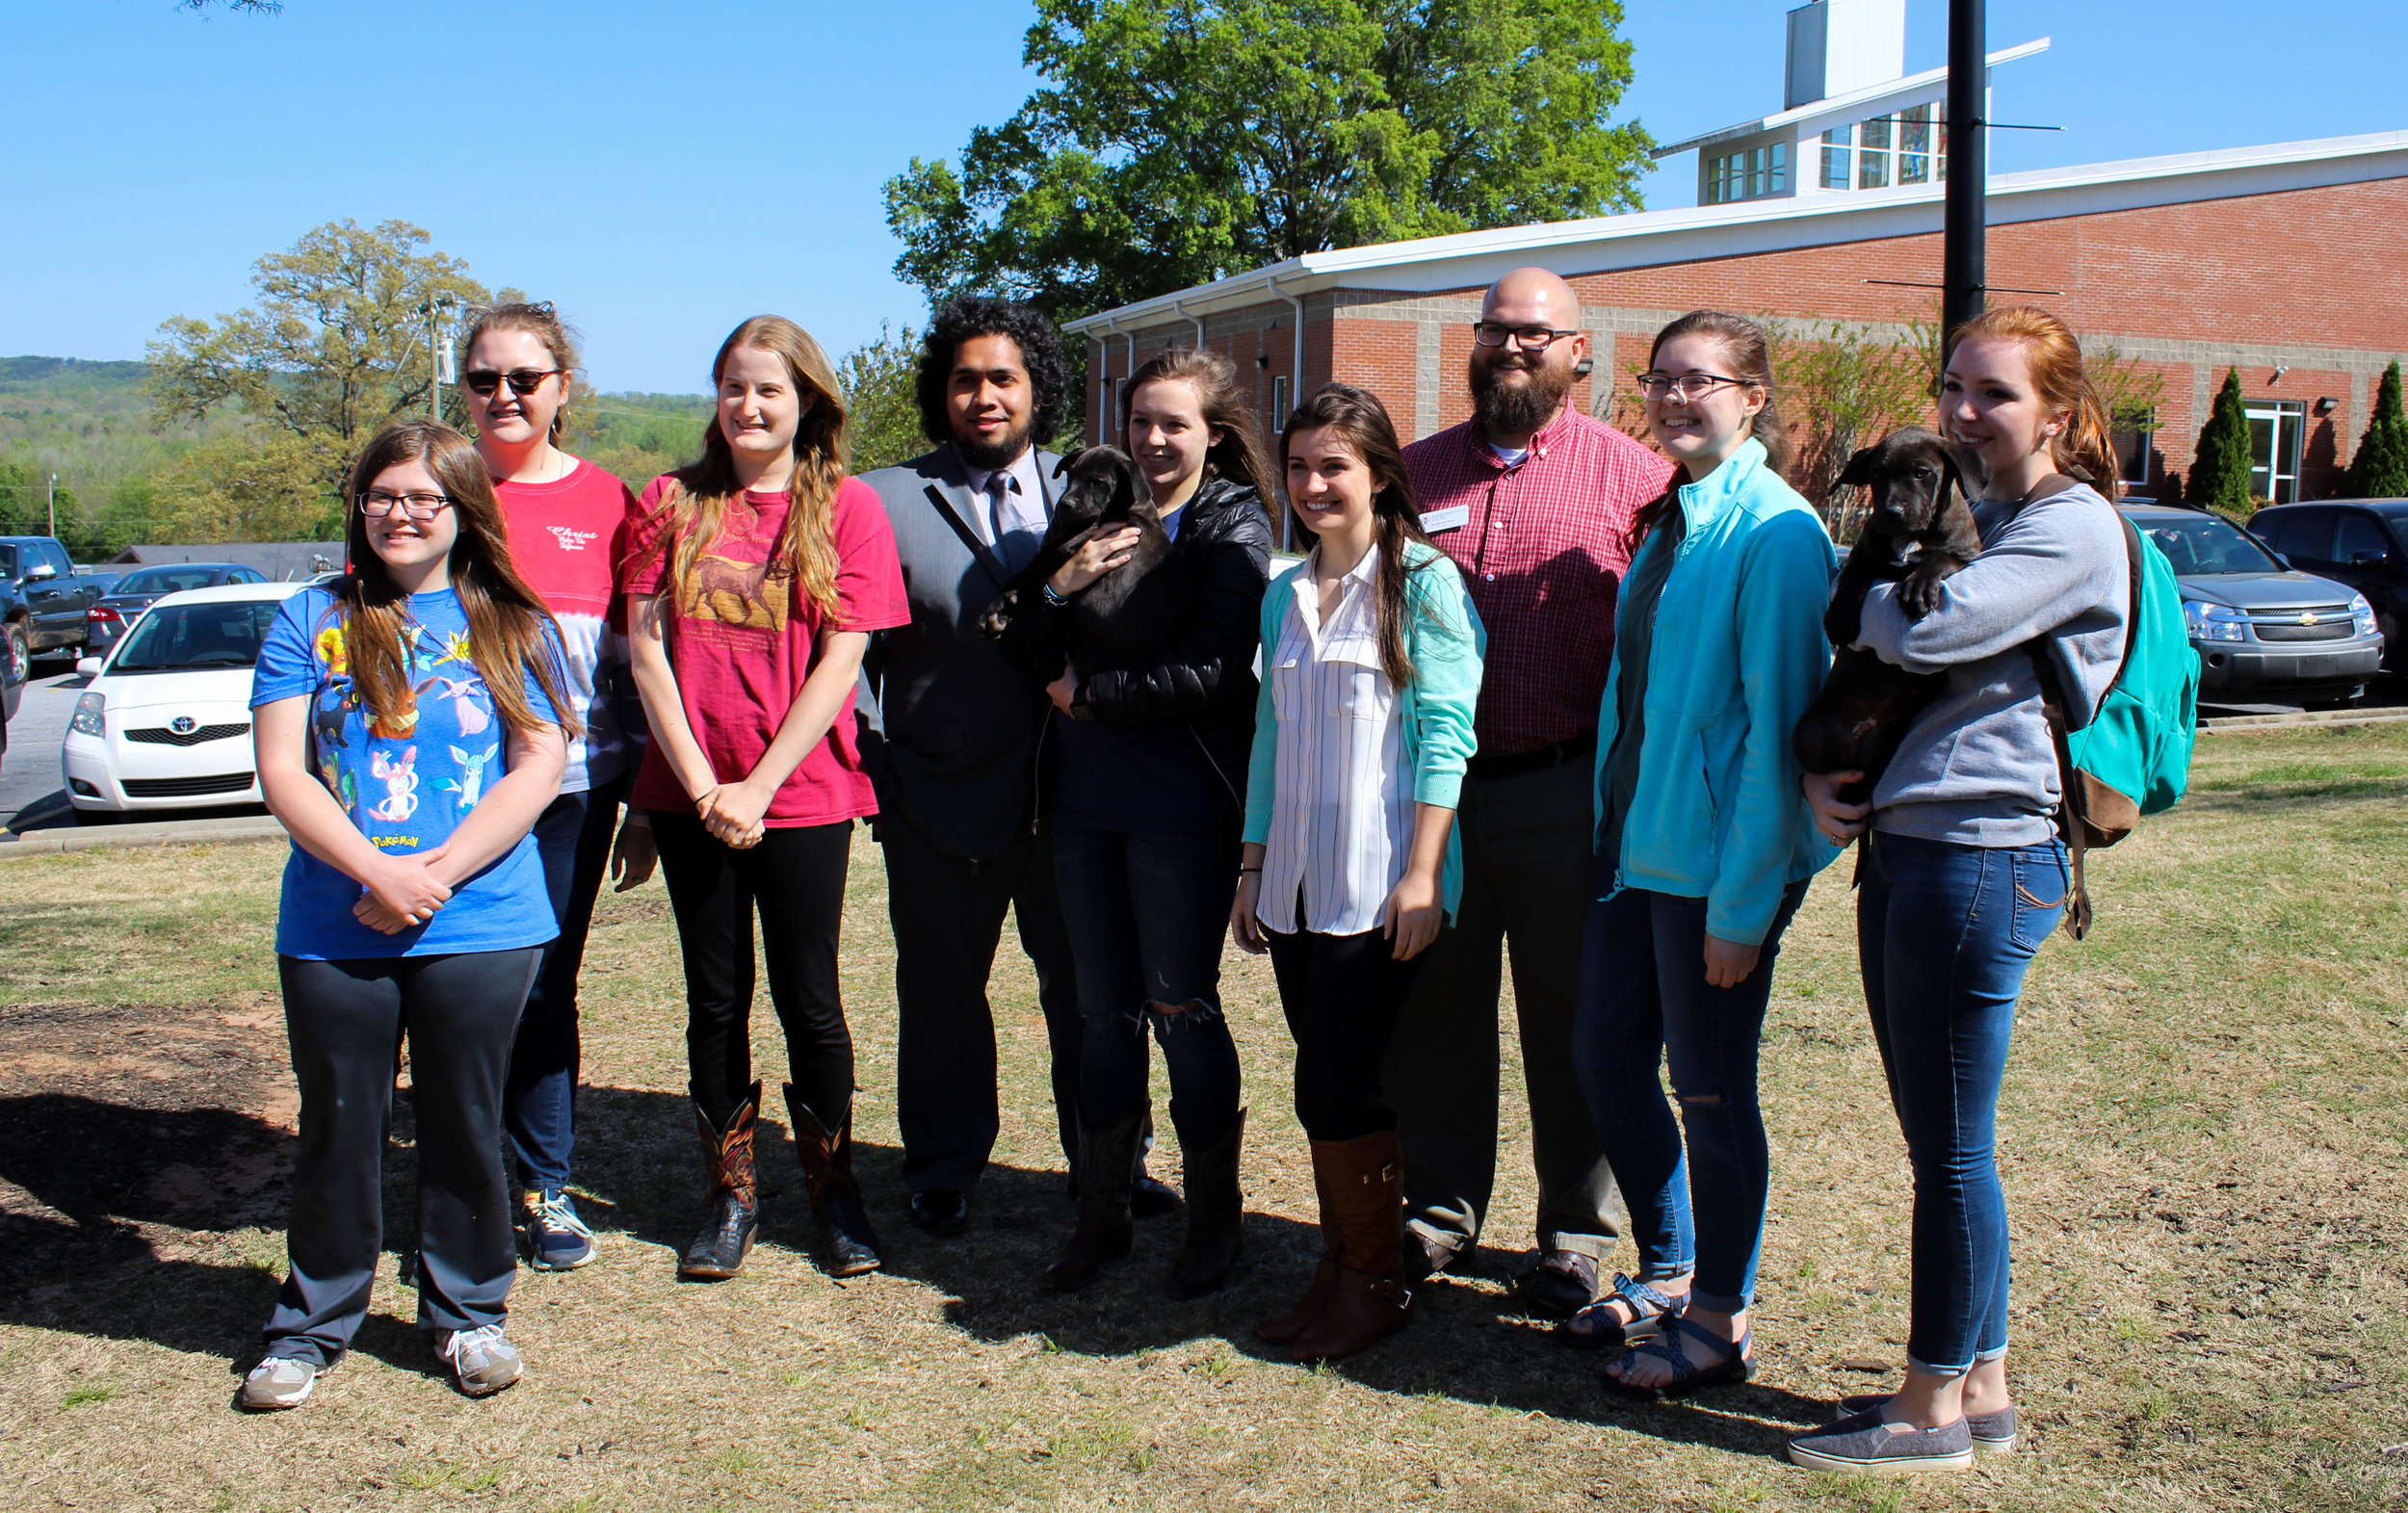 The Animal Science Club, who hosted the event, get together with some puppies to take a picture.